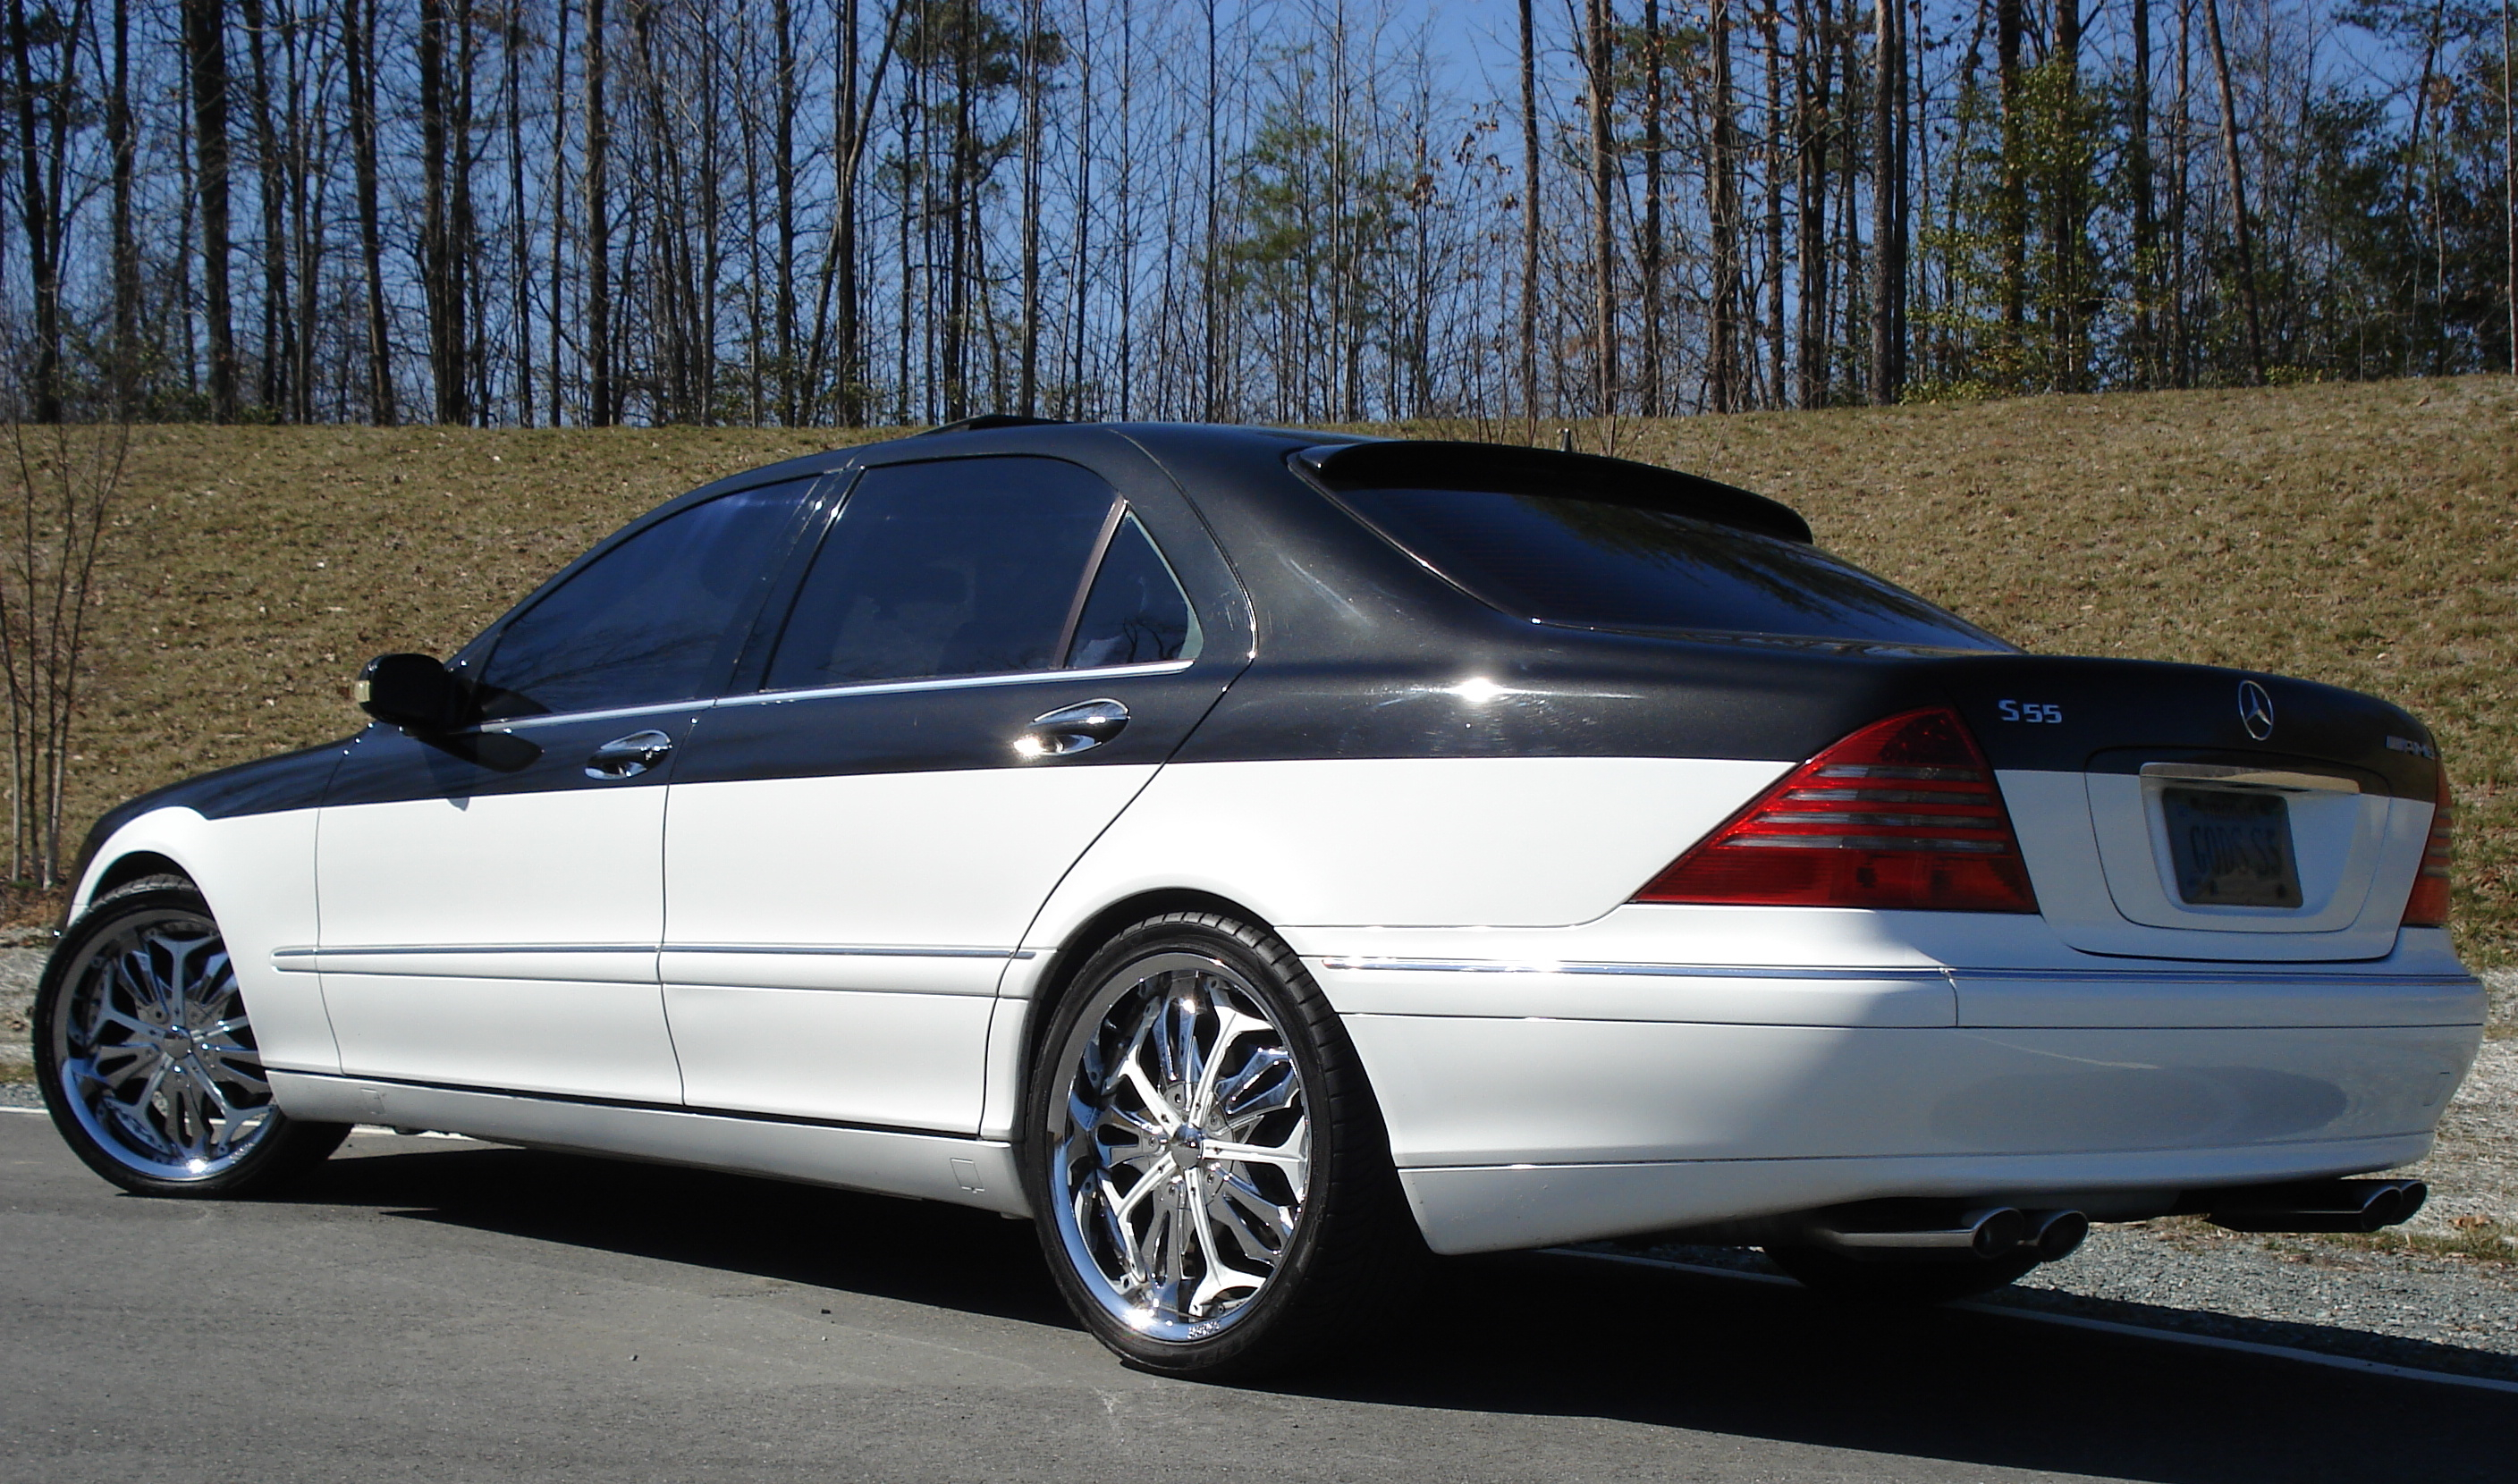 Ice55s 2001 mercedes benz s class specs photos for Mercedes benz s class 2001